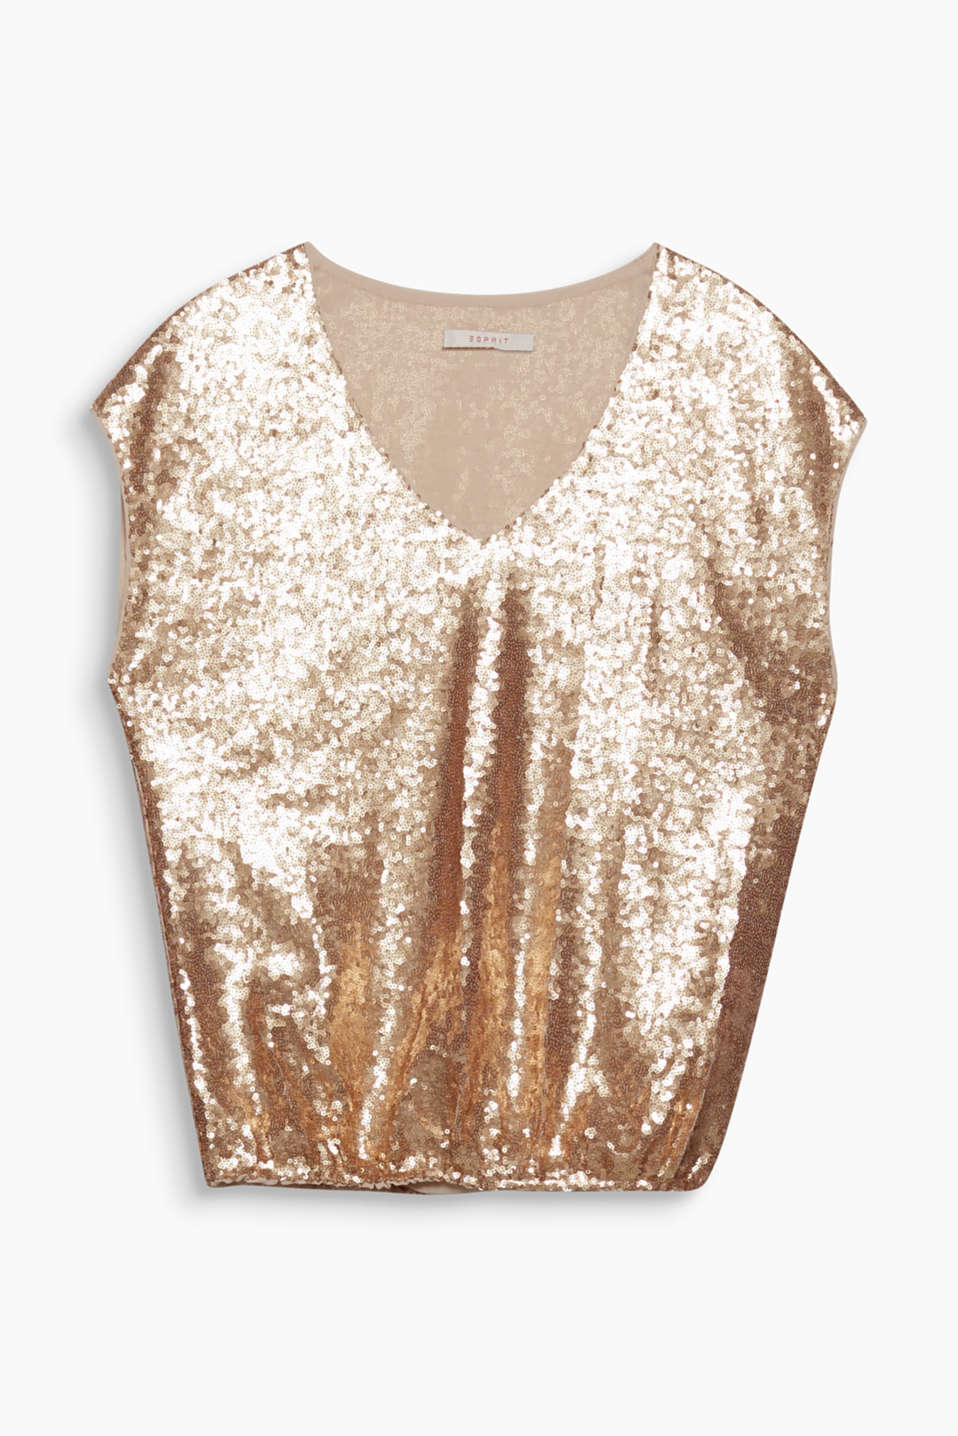 Embellishment: this blouse top with sequins all over will make your look stylish and glamorous!